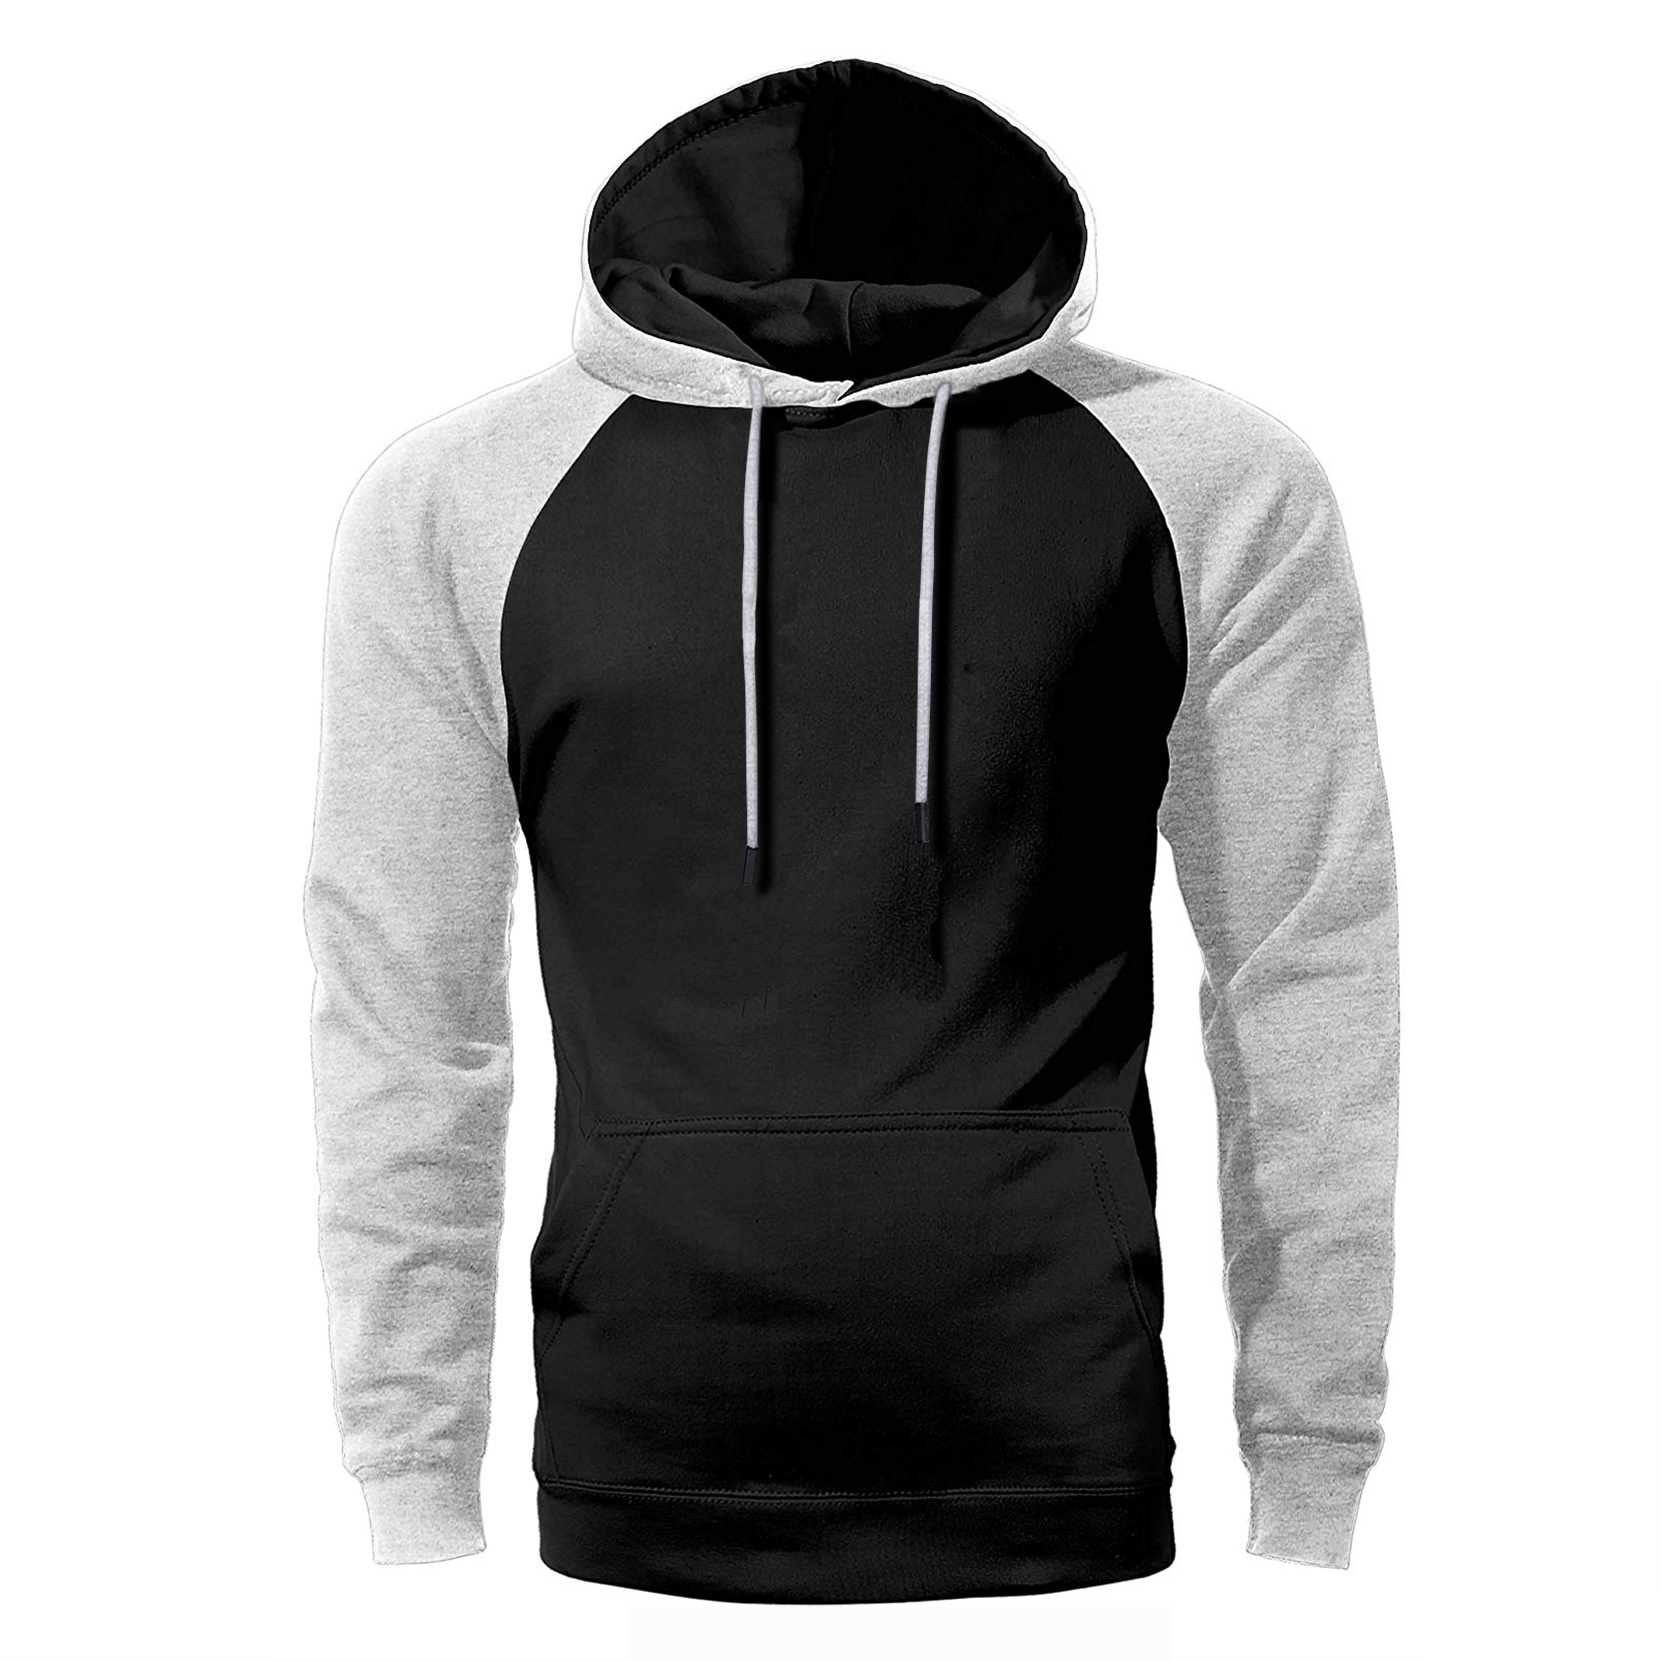 shop for authentic official supplier latest trends of 2019 US $11.5 47% OFF|Solid Raglan Hoodie Men Black Red Yellow Blue Hipster  Hooded Sweatshirt Hot Spring Autumn Hoodies Loose Streetwear Sportswear-in  ...